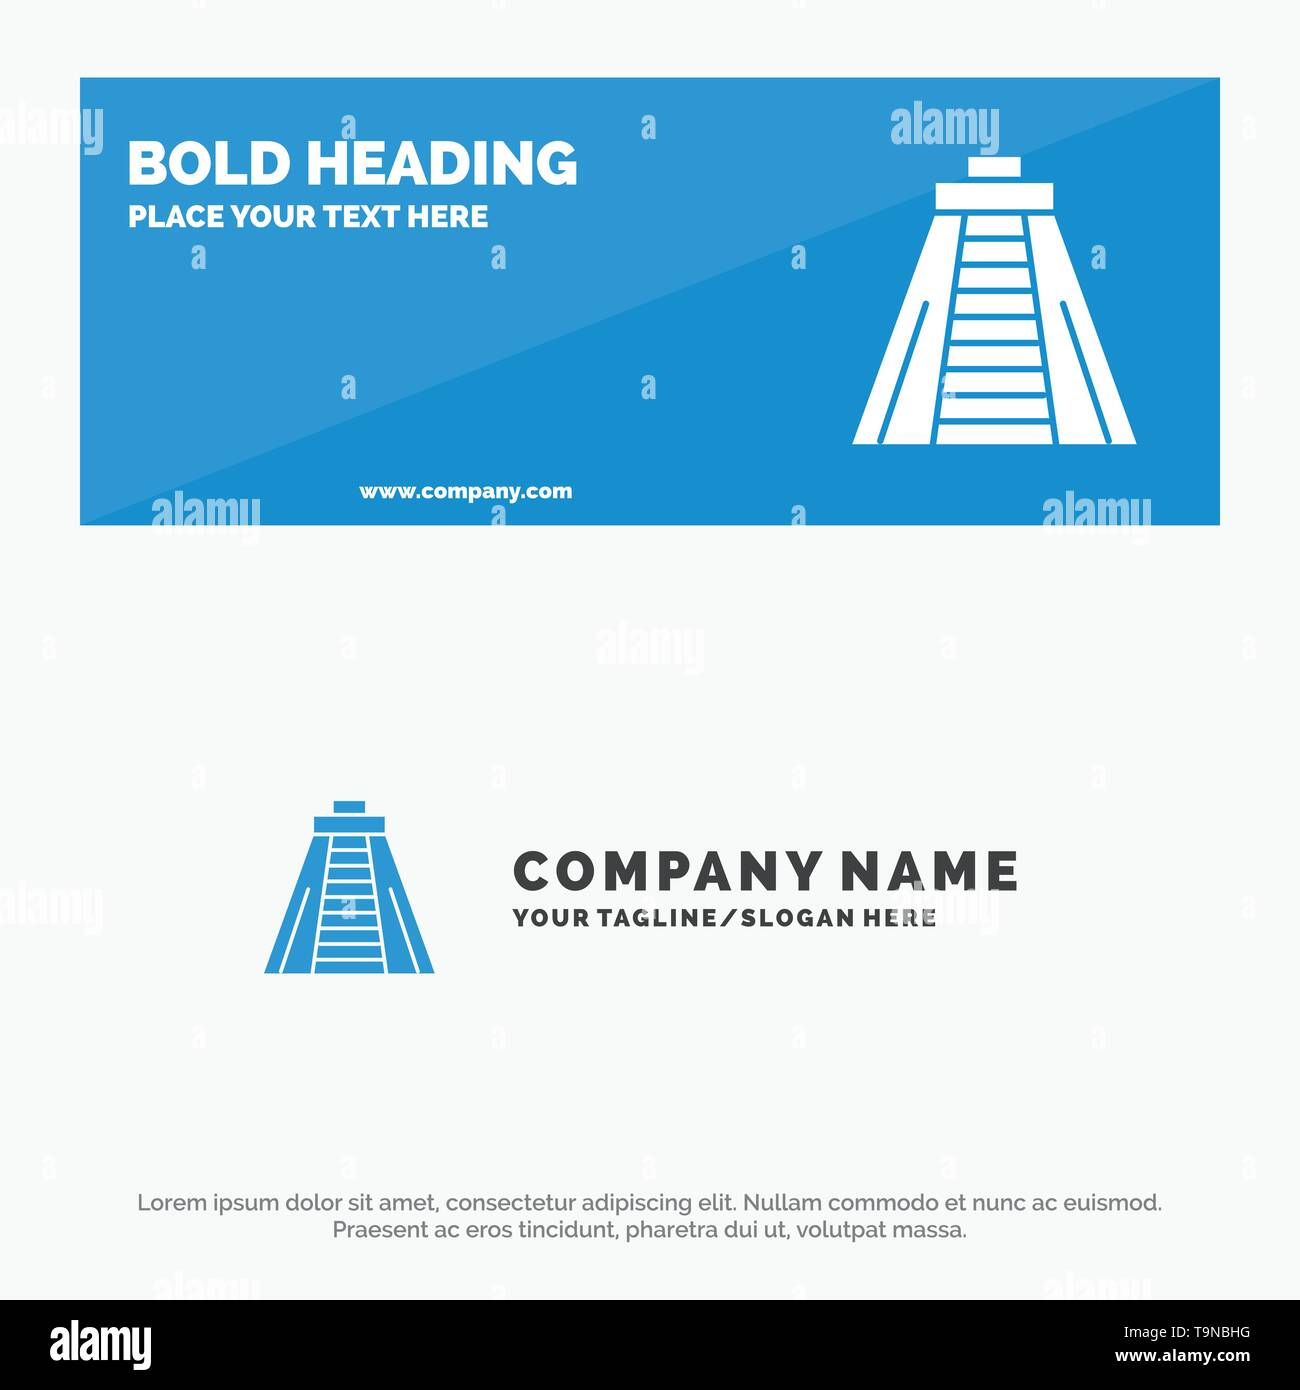 Chichen Itza, Landmark, Monument SOlid Icon Website Banner and Business Logo Template - Stock Image